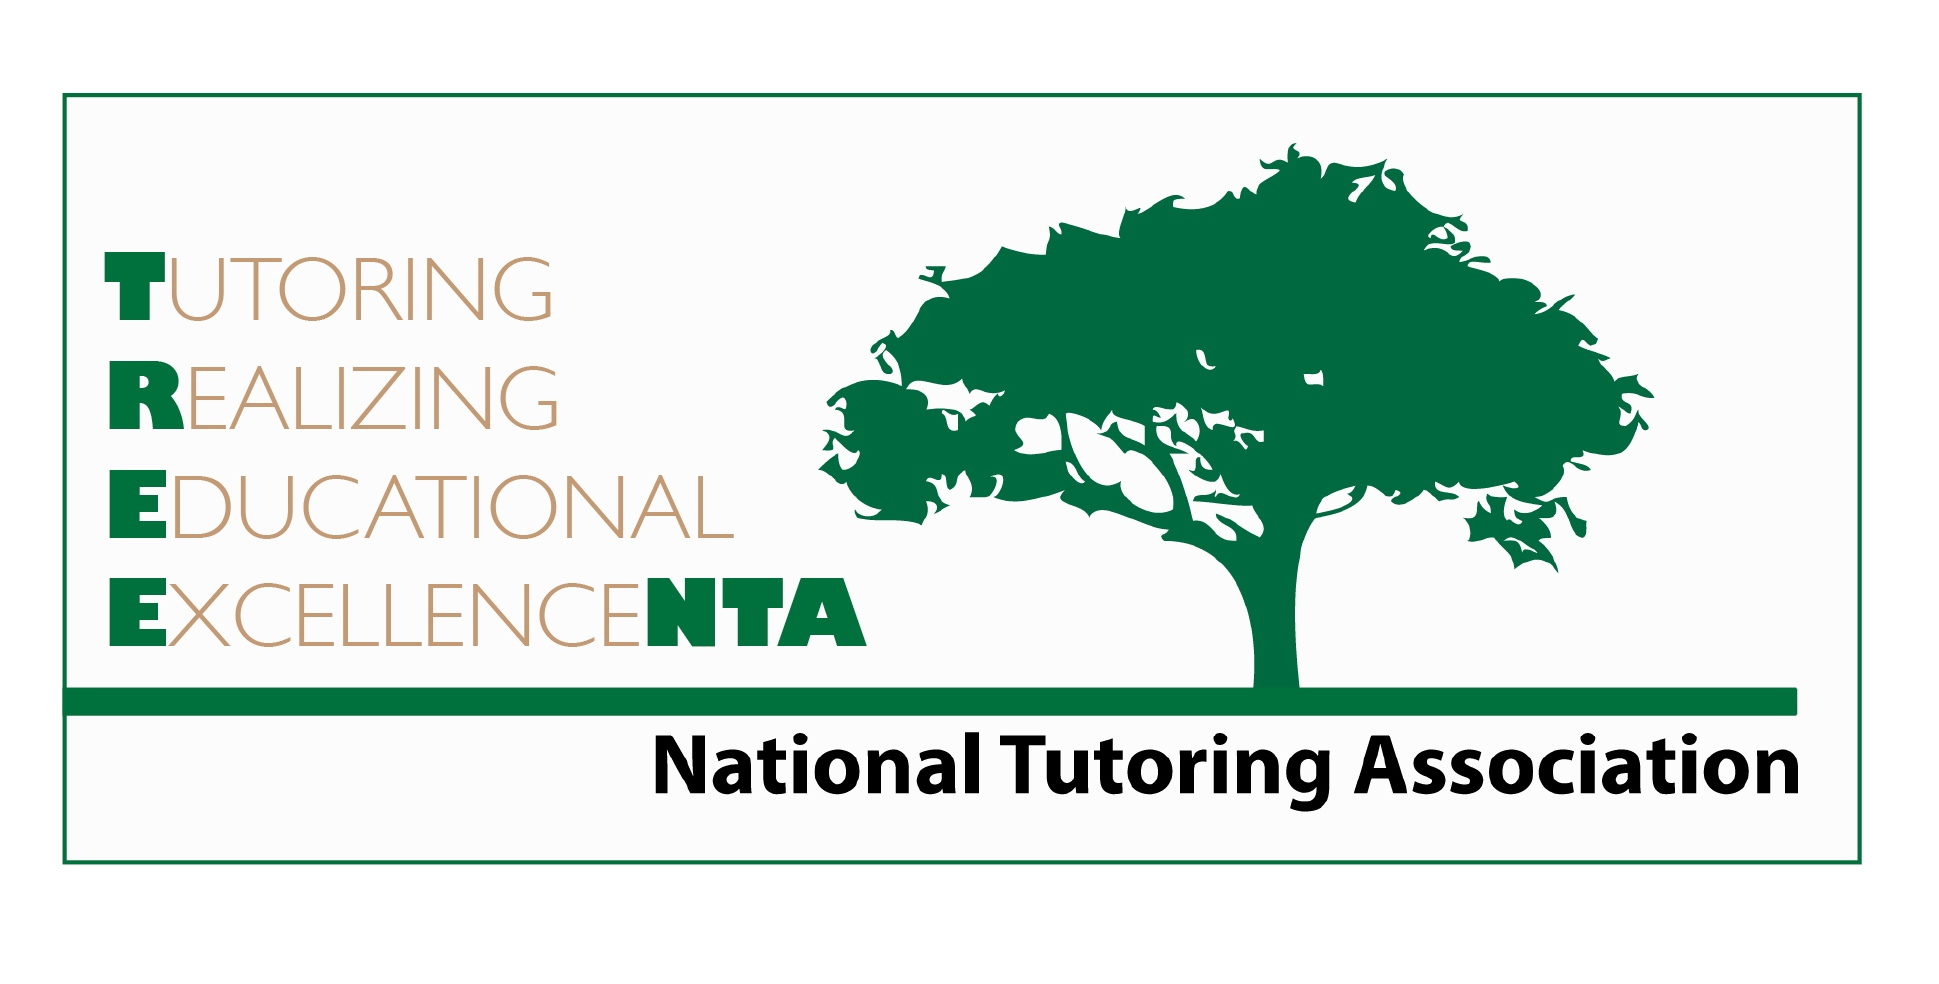 NTA-logo-2013-green-border-cropped.jpg